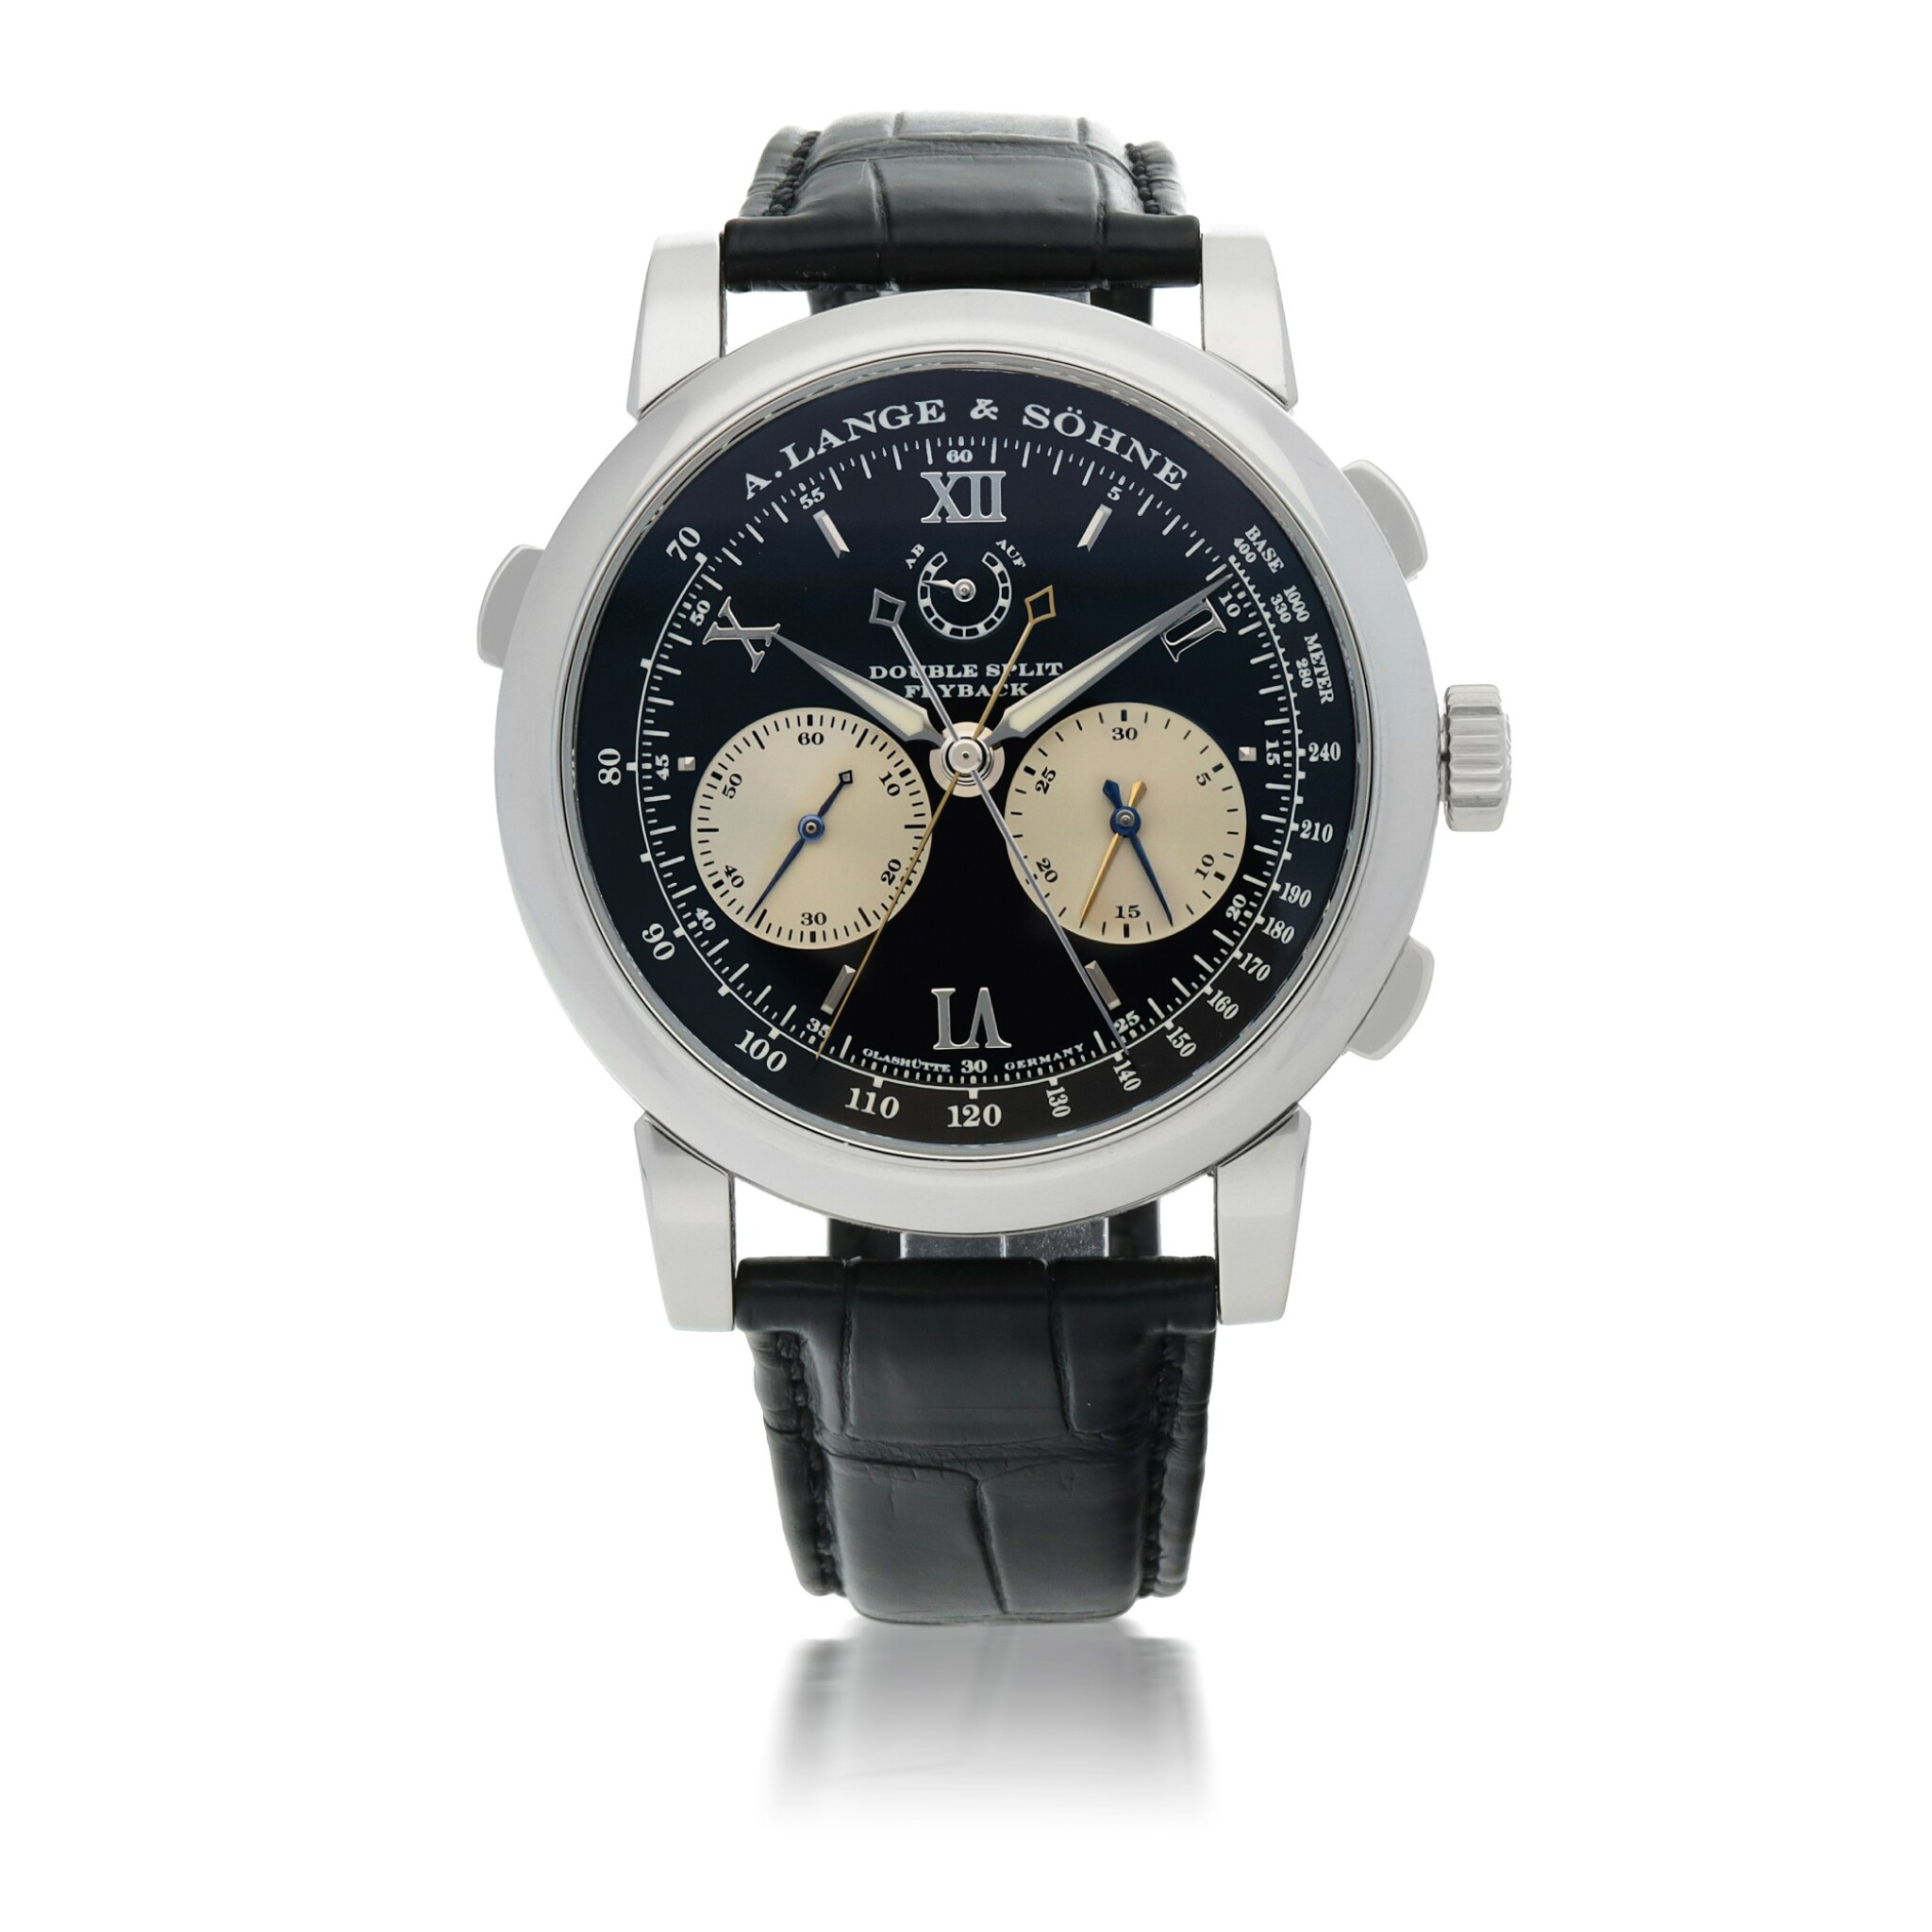 View 1 of Lot 309. DOUBLE SPLIT FLYBACK PLATINUM DOUBLE SPLIT FLYBACK CHRONOGRAPH WRISTWATCH WITH POWER RESERVE INDICATION CIRCA 2015.